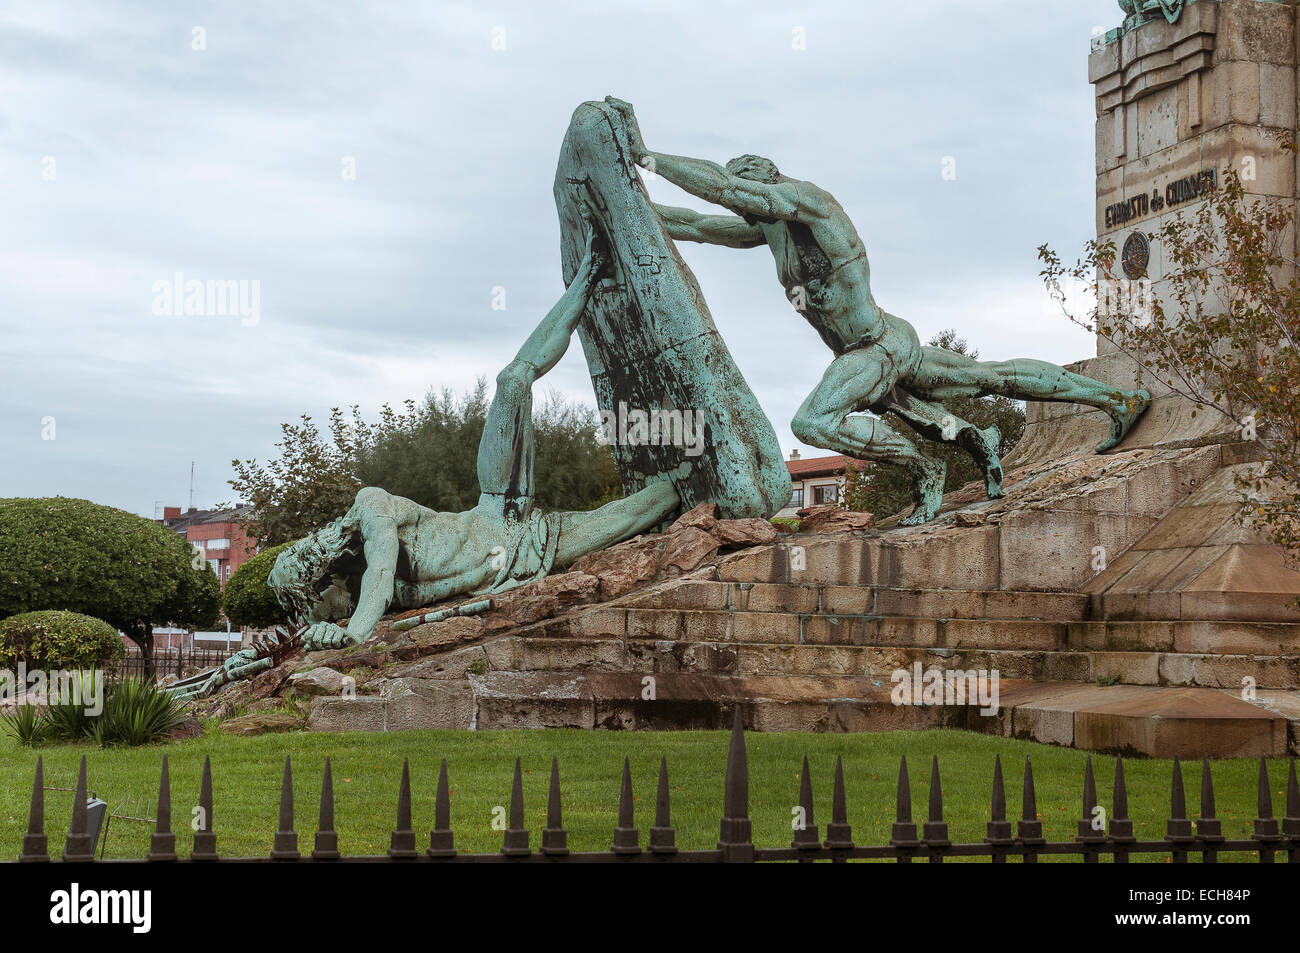 Analogy to the struggle of man against the sea represented in this monument, by neptune in Las Arenas Getxo, Bilbao, - Stock Image